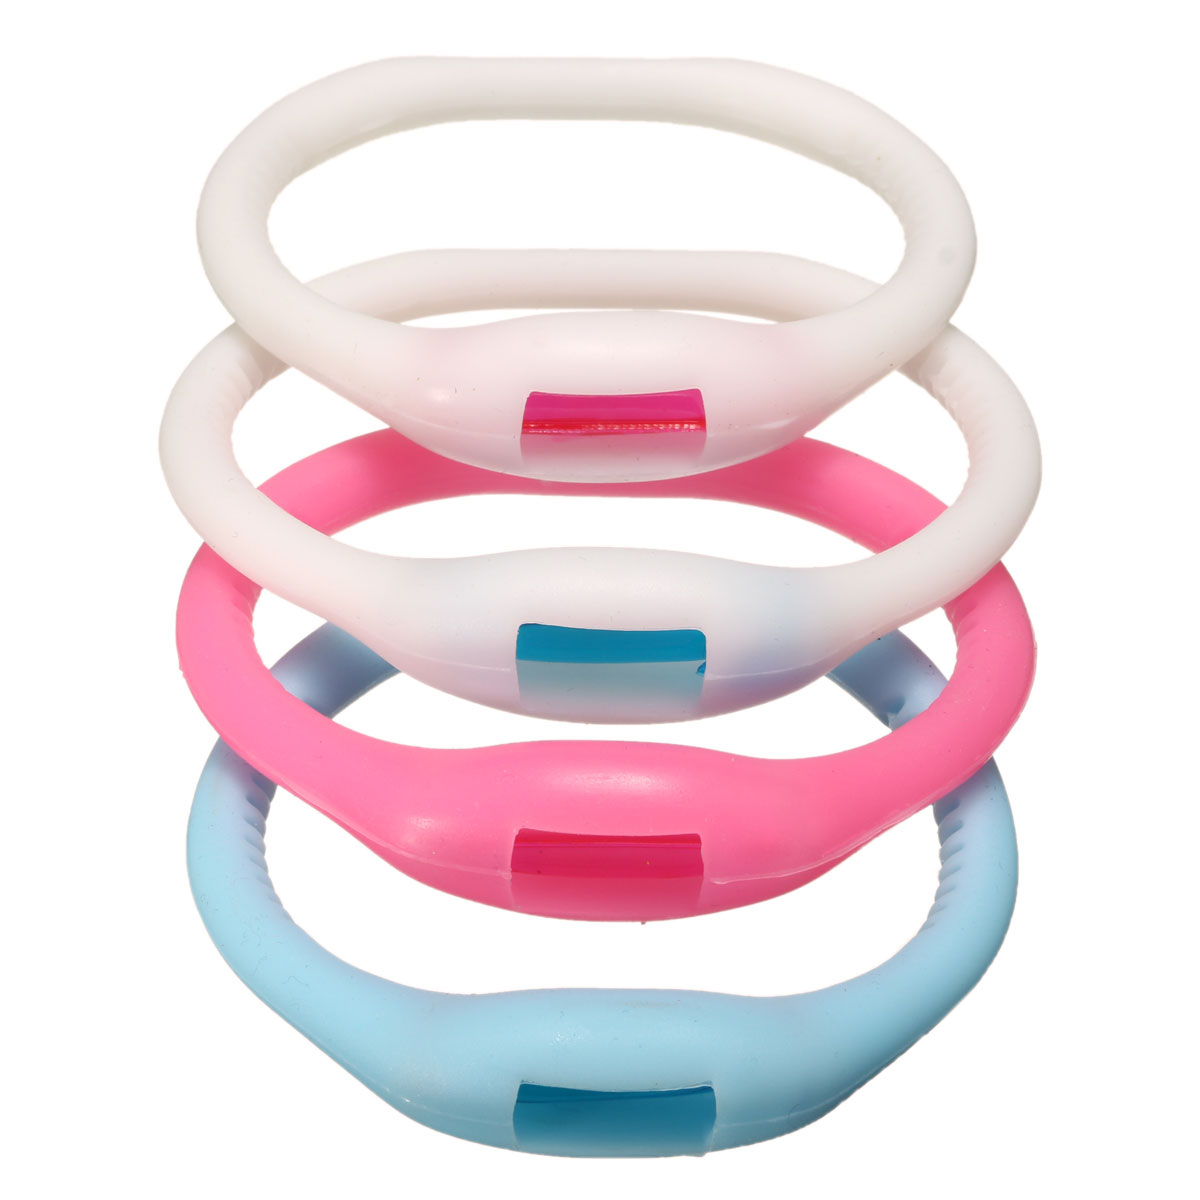 4 Color Pest Control Mosquito Repeller Bracelet For Kids